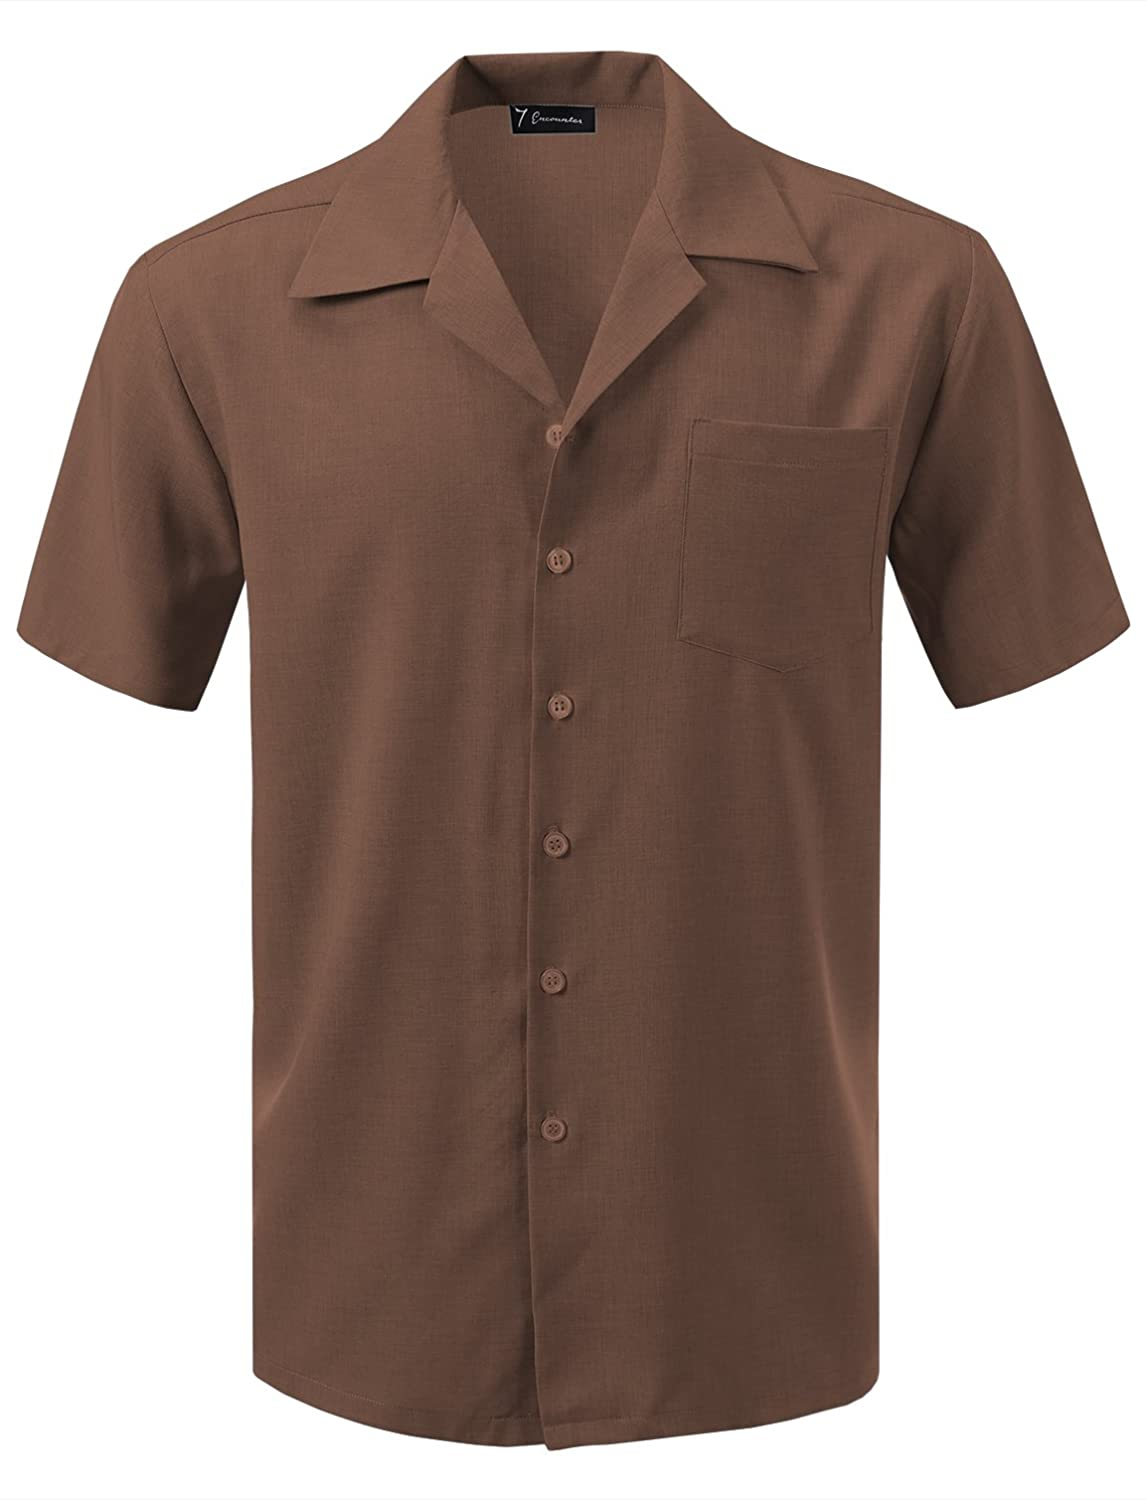 50s Costumes | 50s Halloween Costumes 7 Encounter Mens Camp Dress Shirt $29.99 AT vintagedancer.com